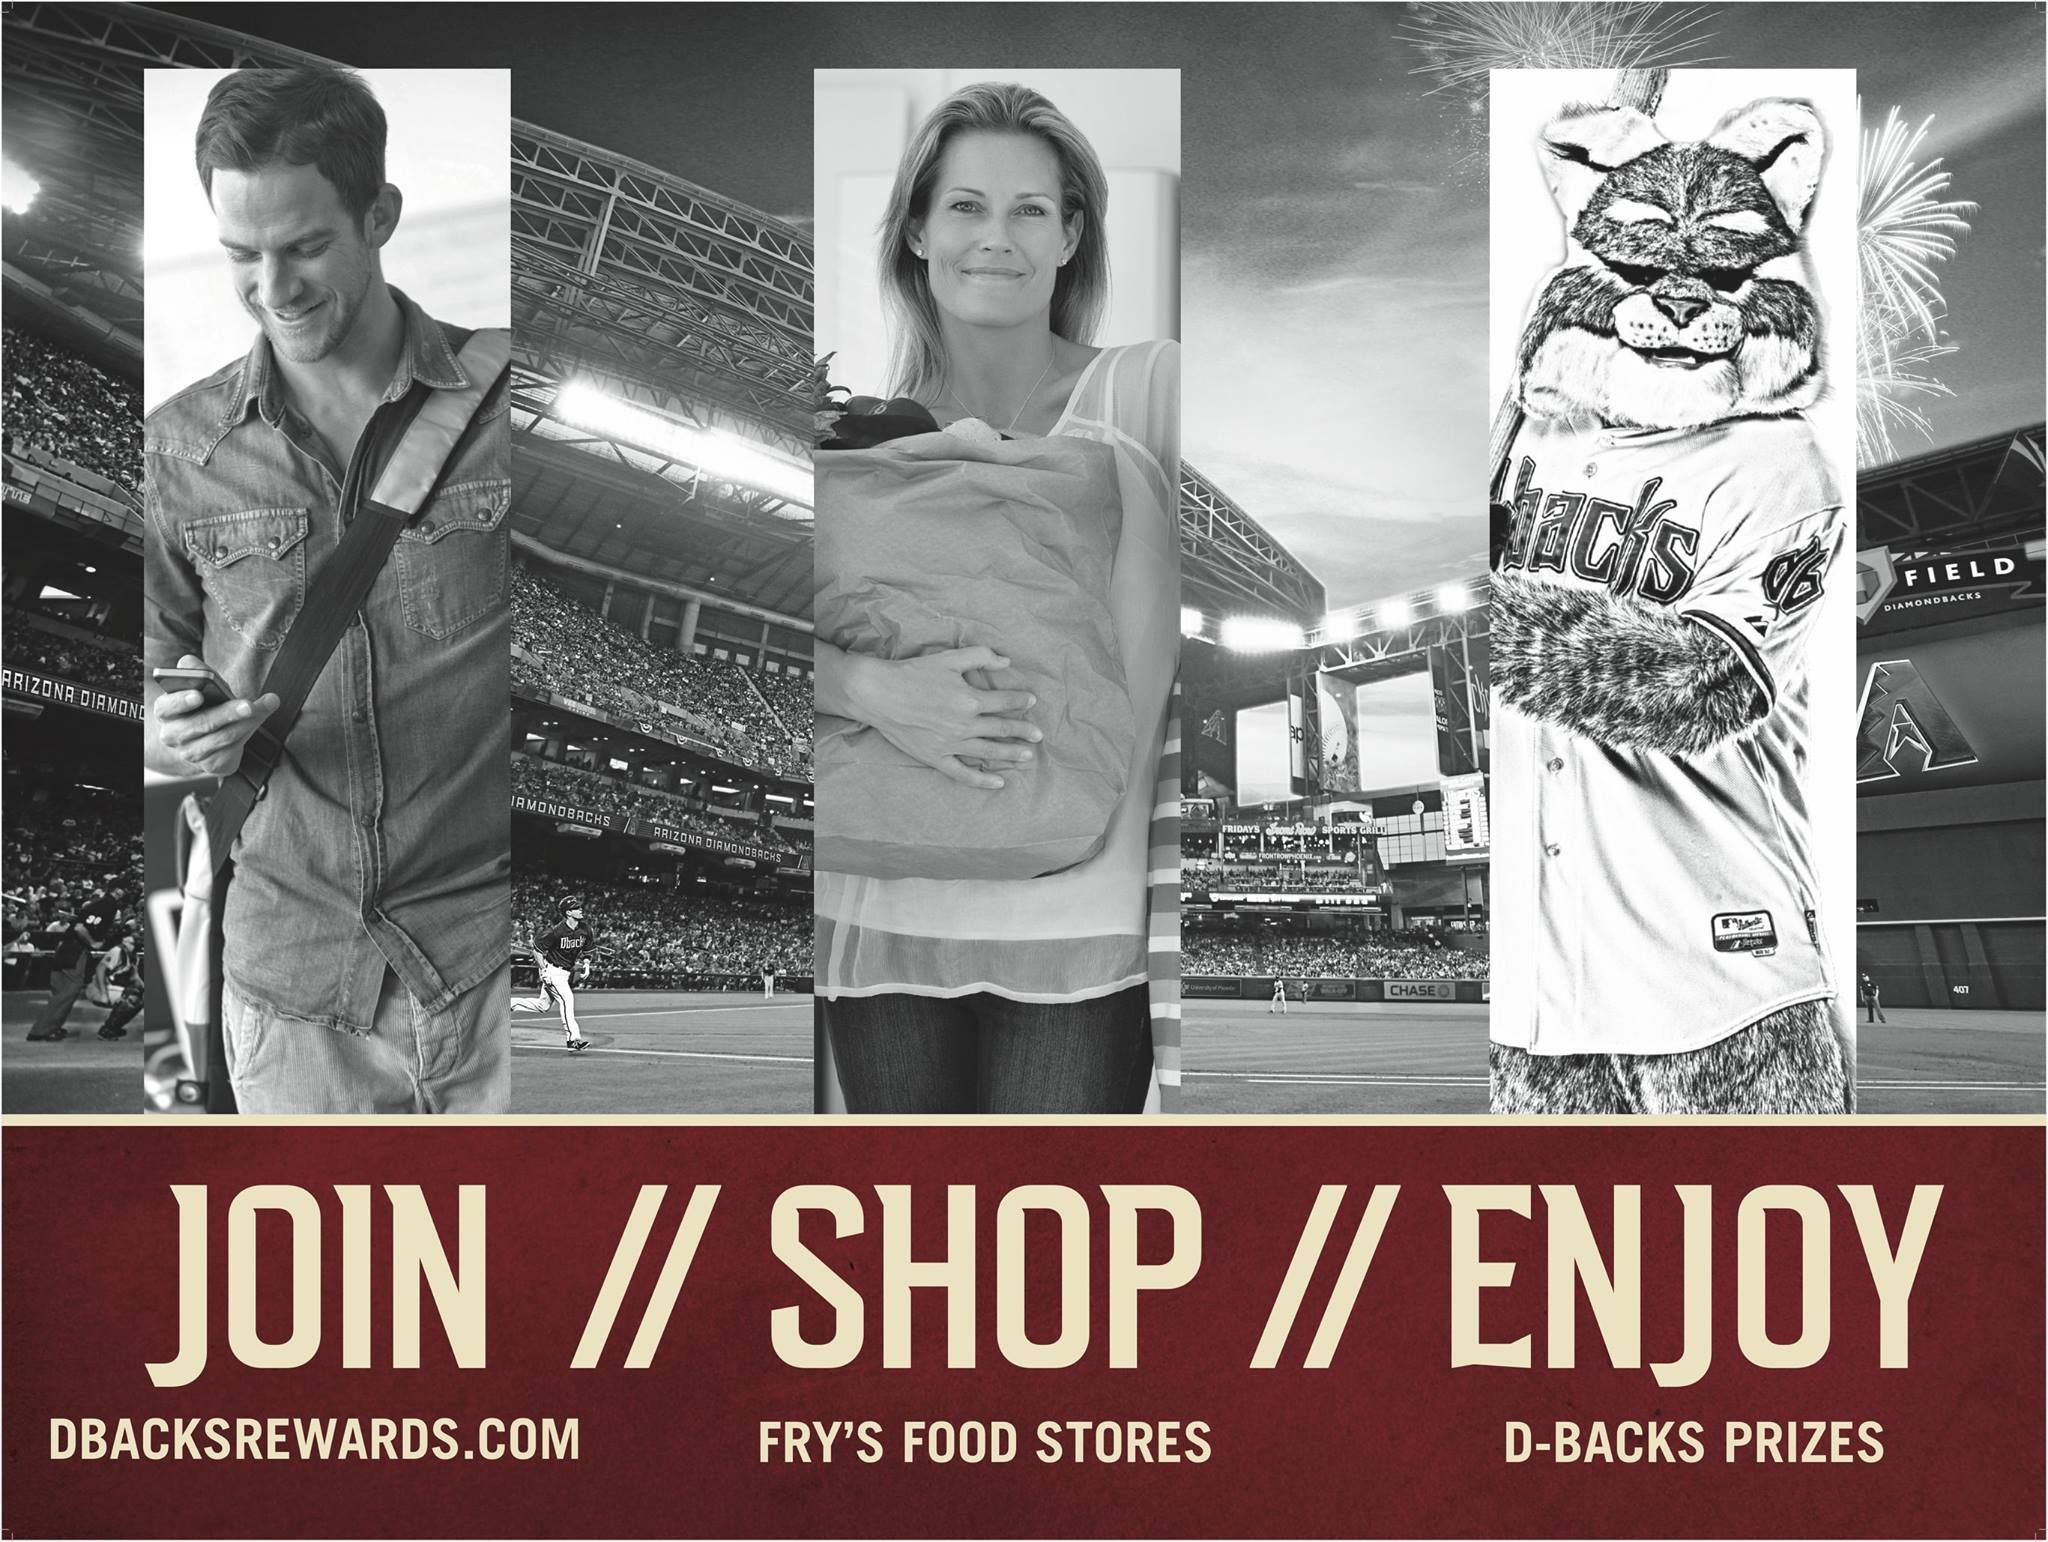 Hurry and Earn D-backs Rewards at Fry's Food Stores!